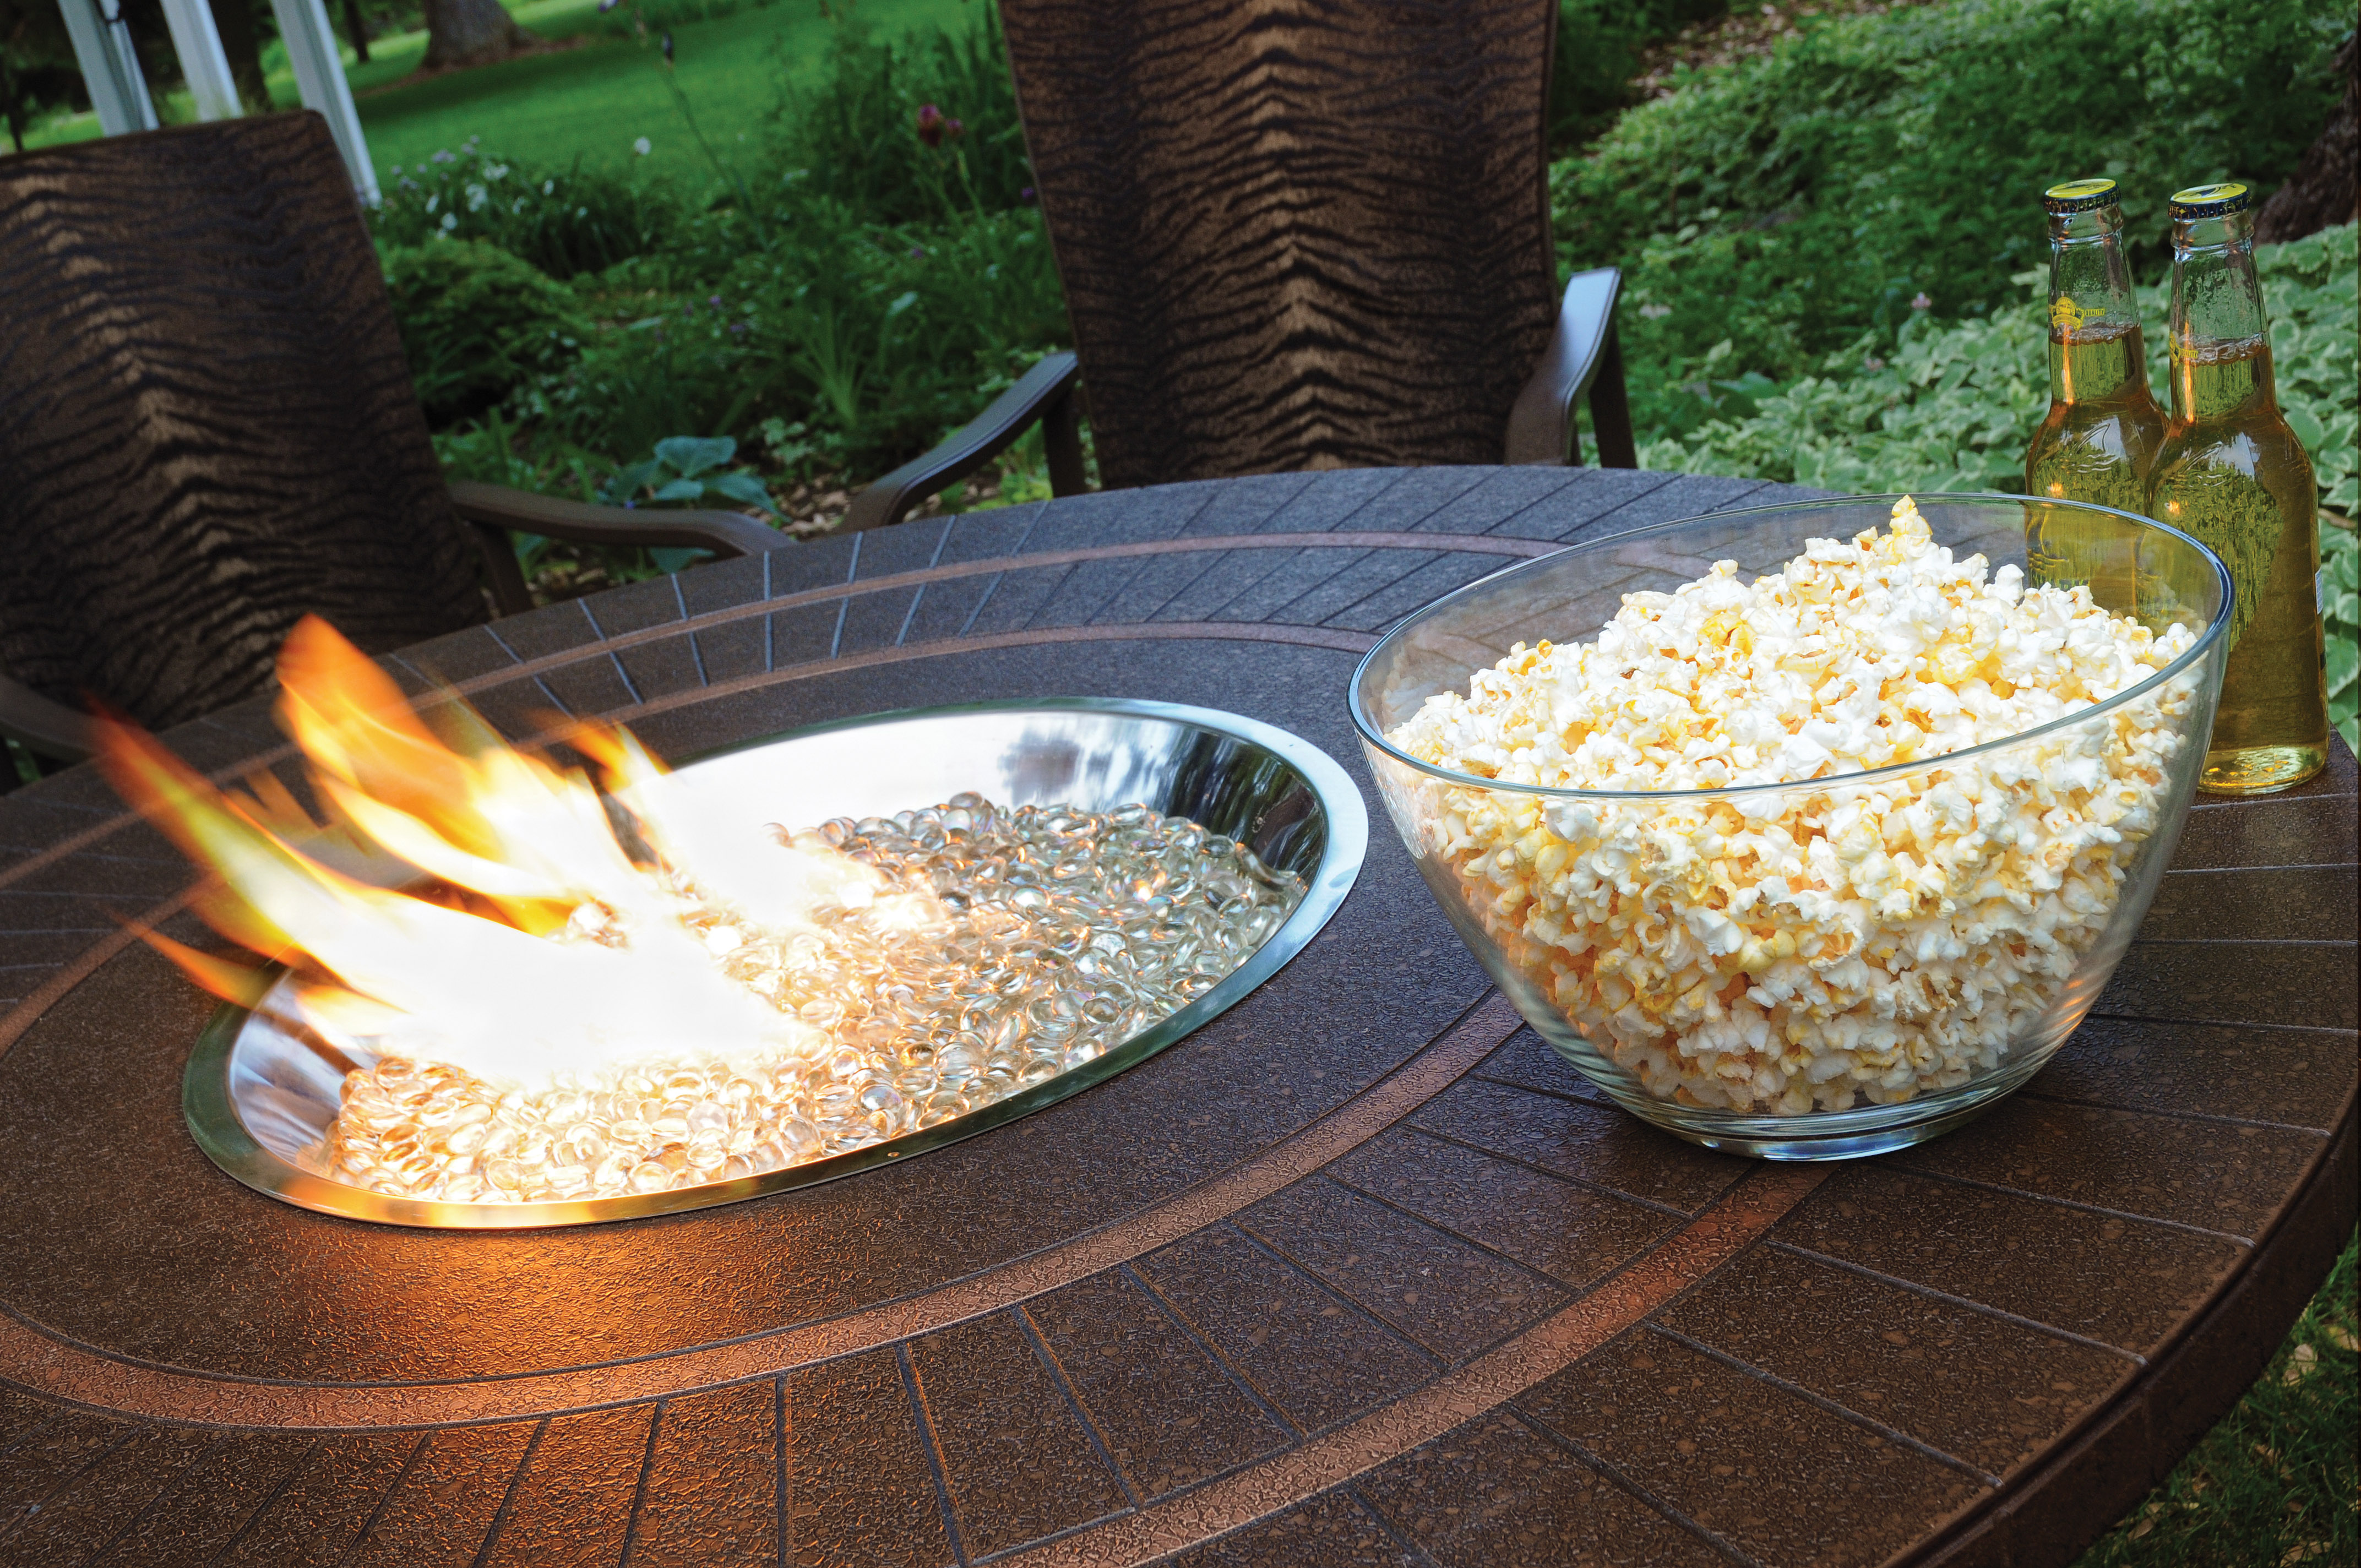 122 Best Backyard   Fire Tables Images On Pinterest | Fire Table, Backyard  Ideas And Garden Ideas